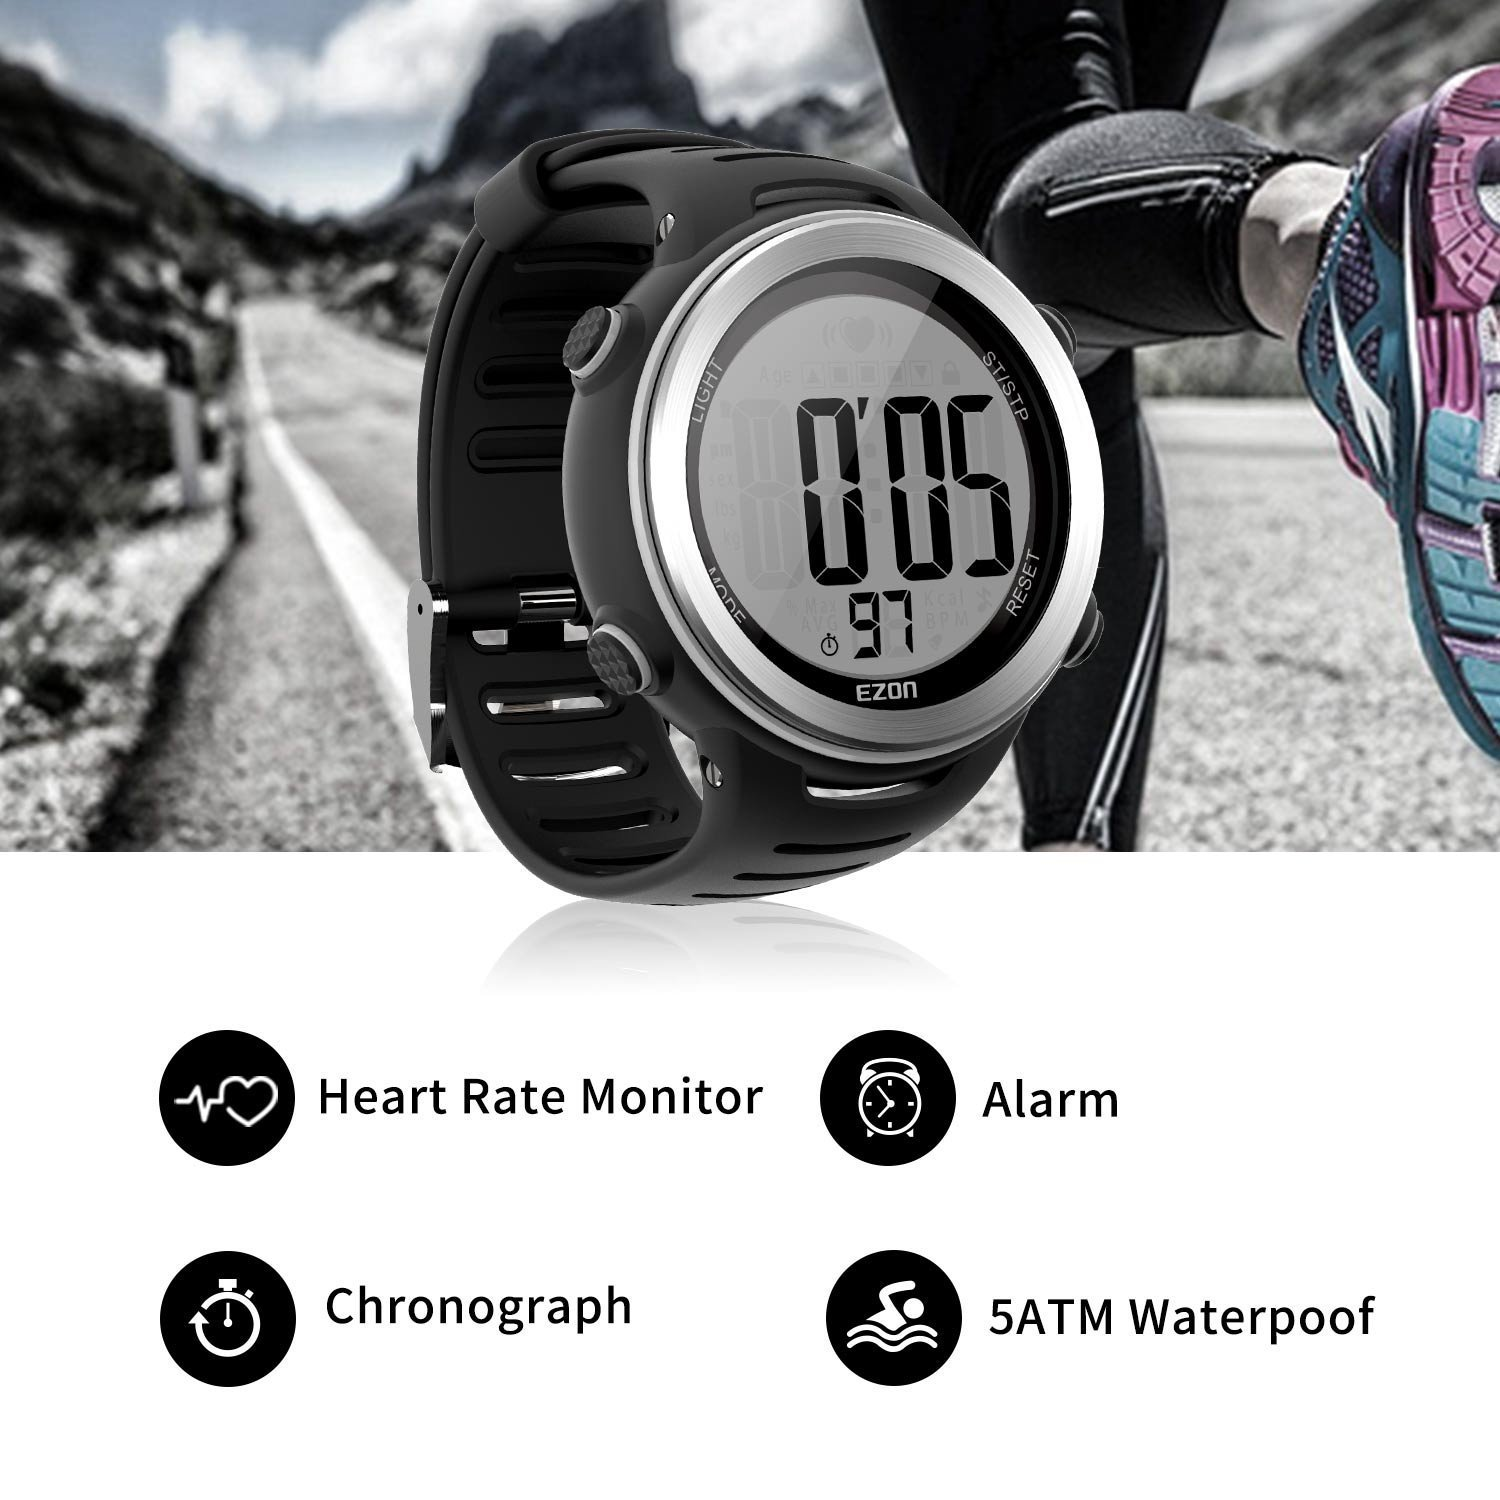 T007 Digital Heart Rate Monitor Sports Watch with Chest Stra